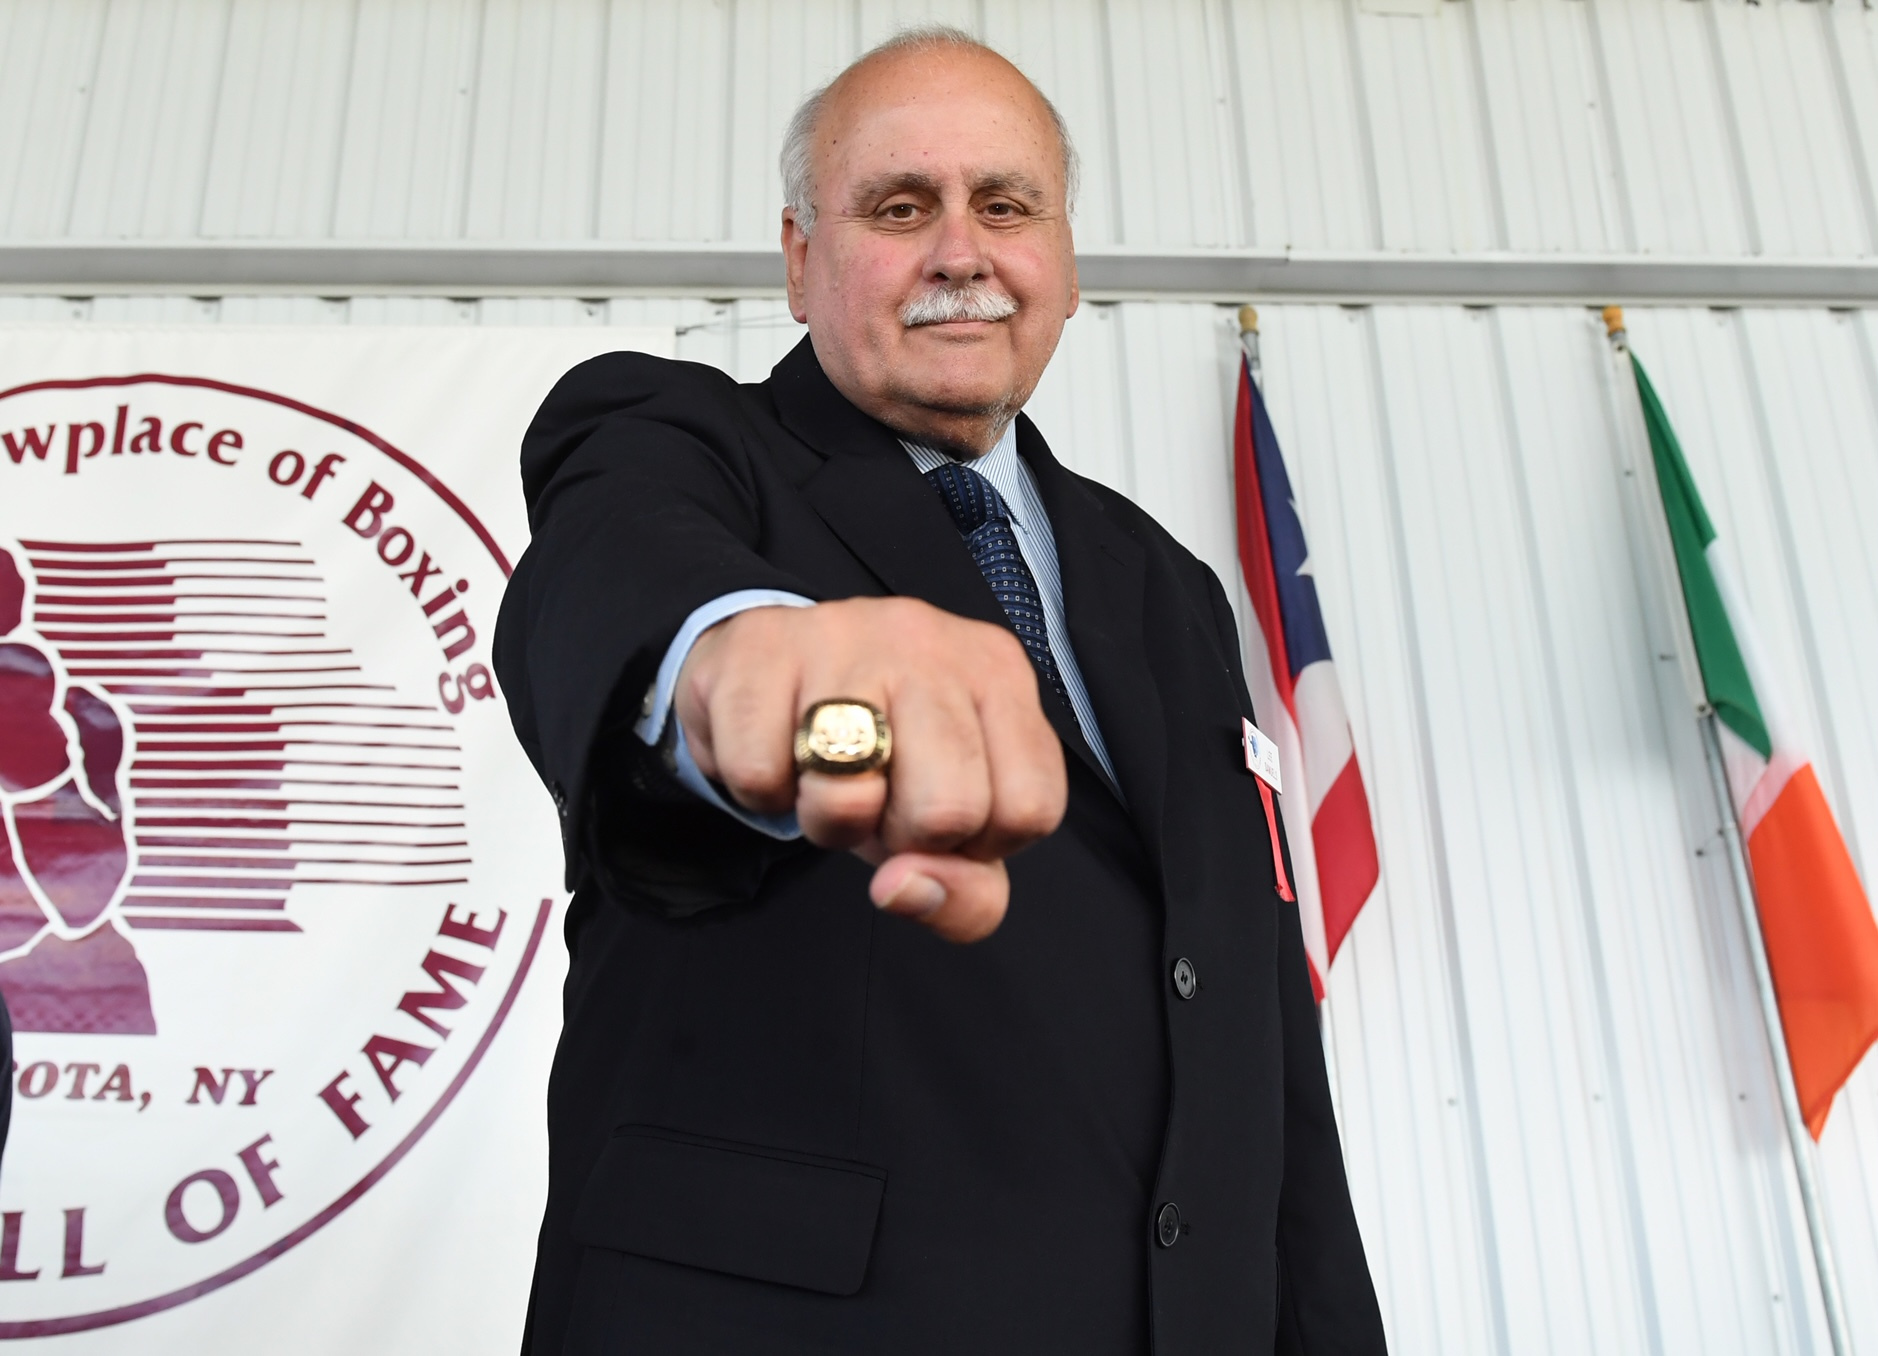 lee samuels - Top Rank Publicist Lee Samuels Inducted into the Boxing Hall of Fame